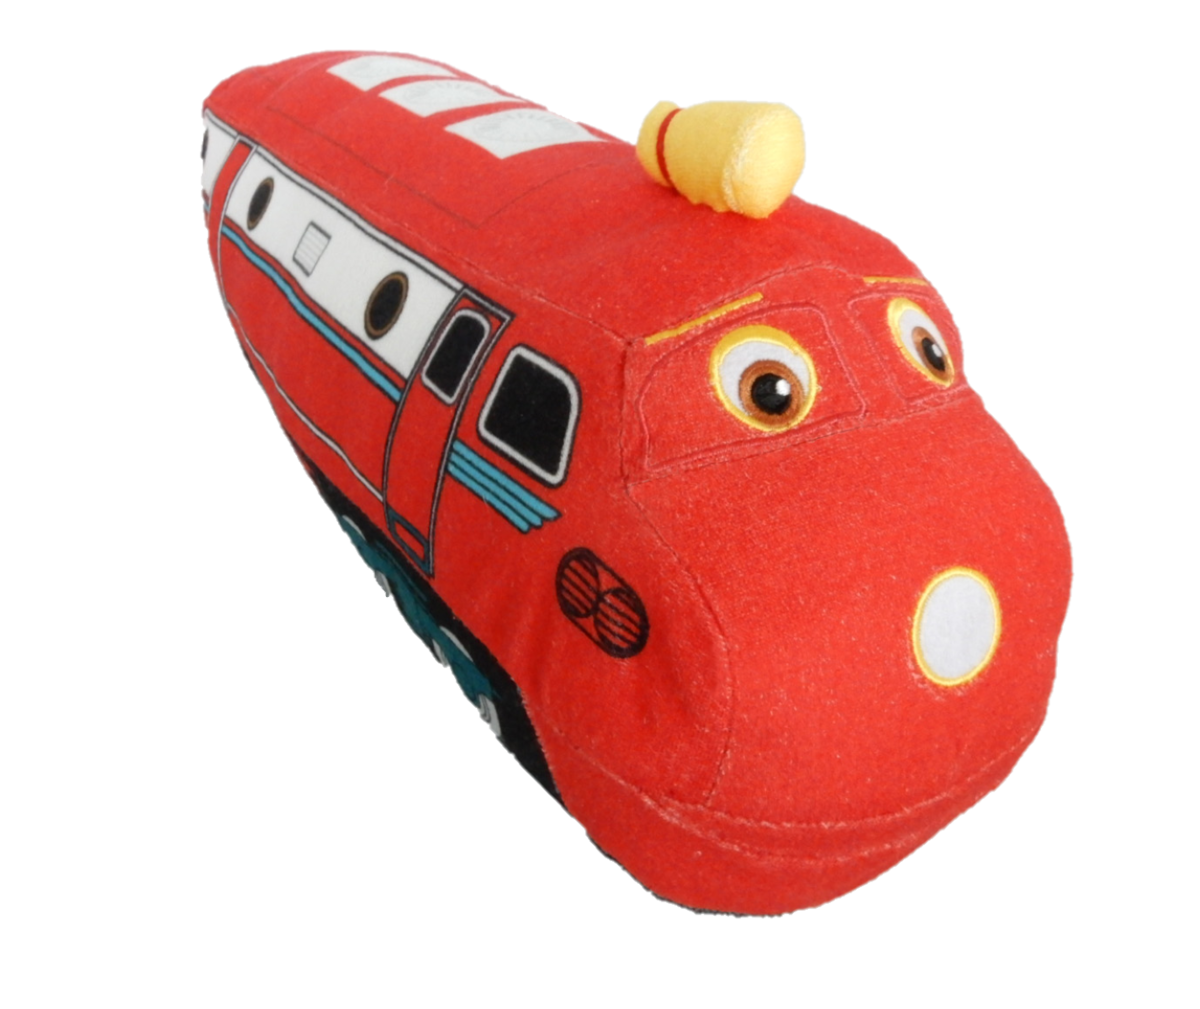 f:id:chuggington-blog:20191101120109p:plain